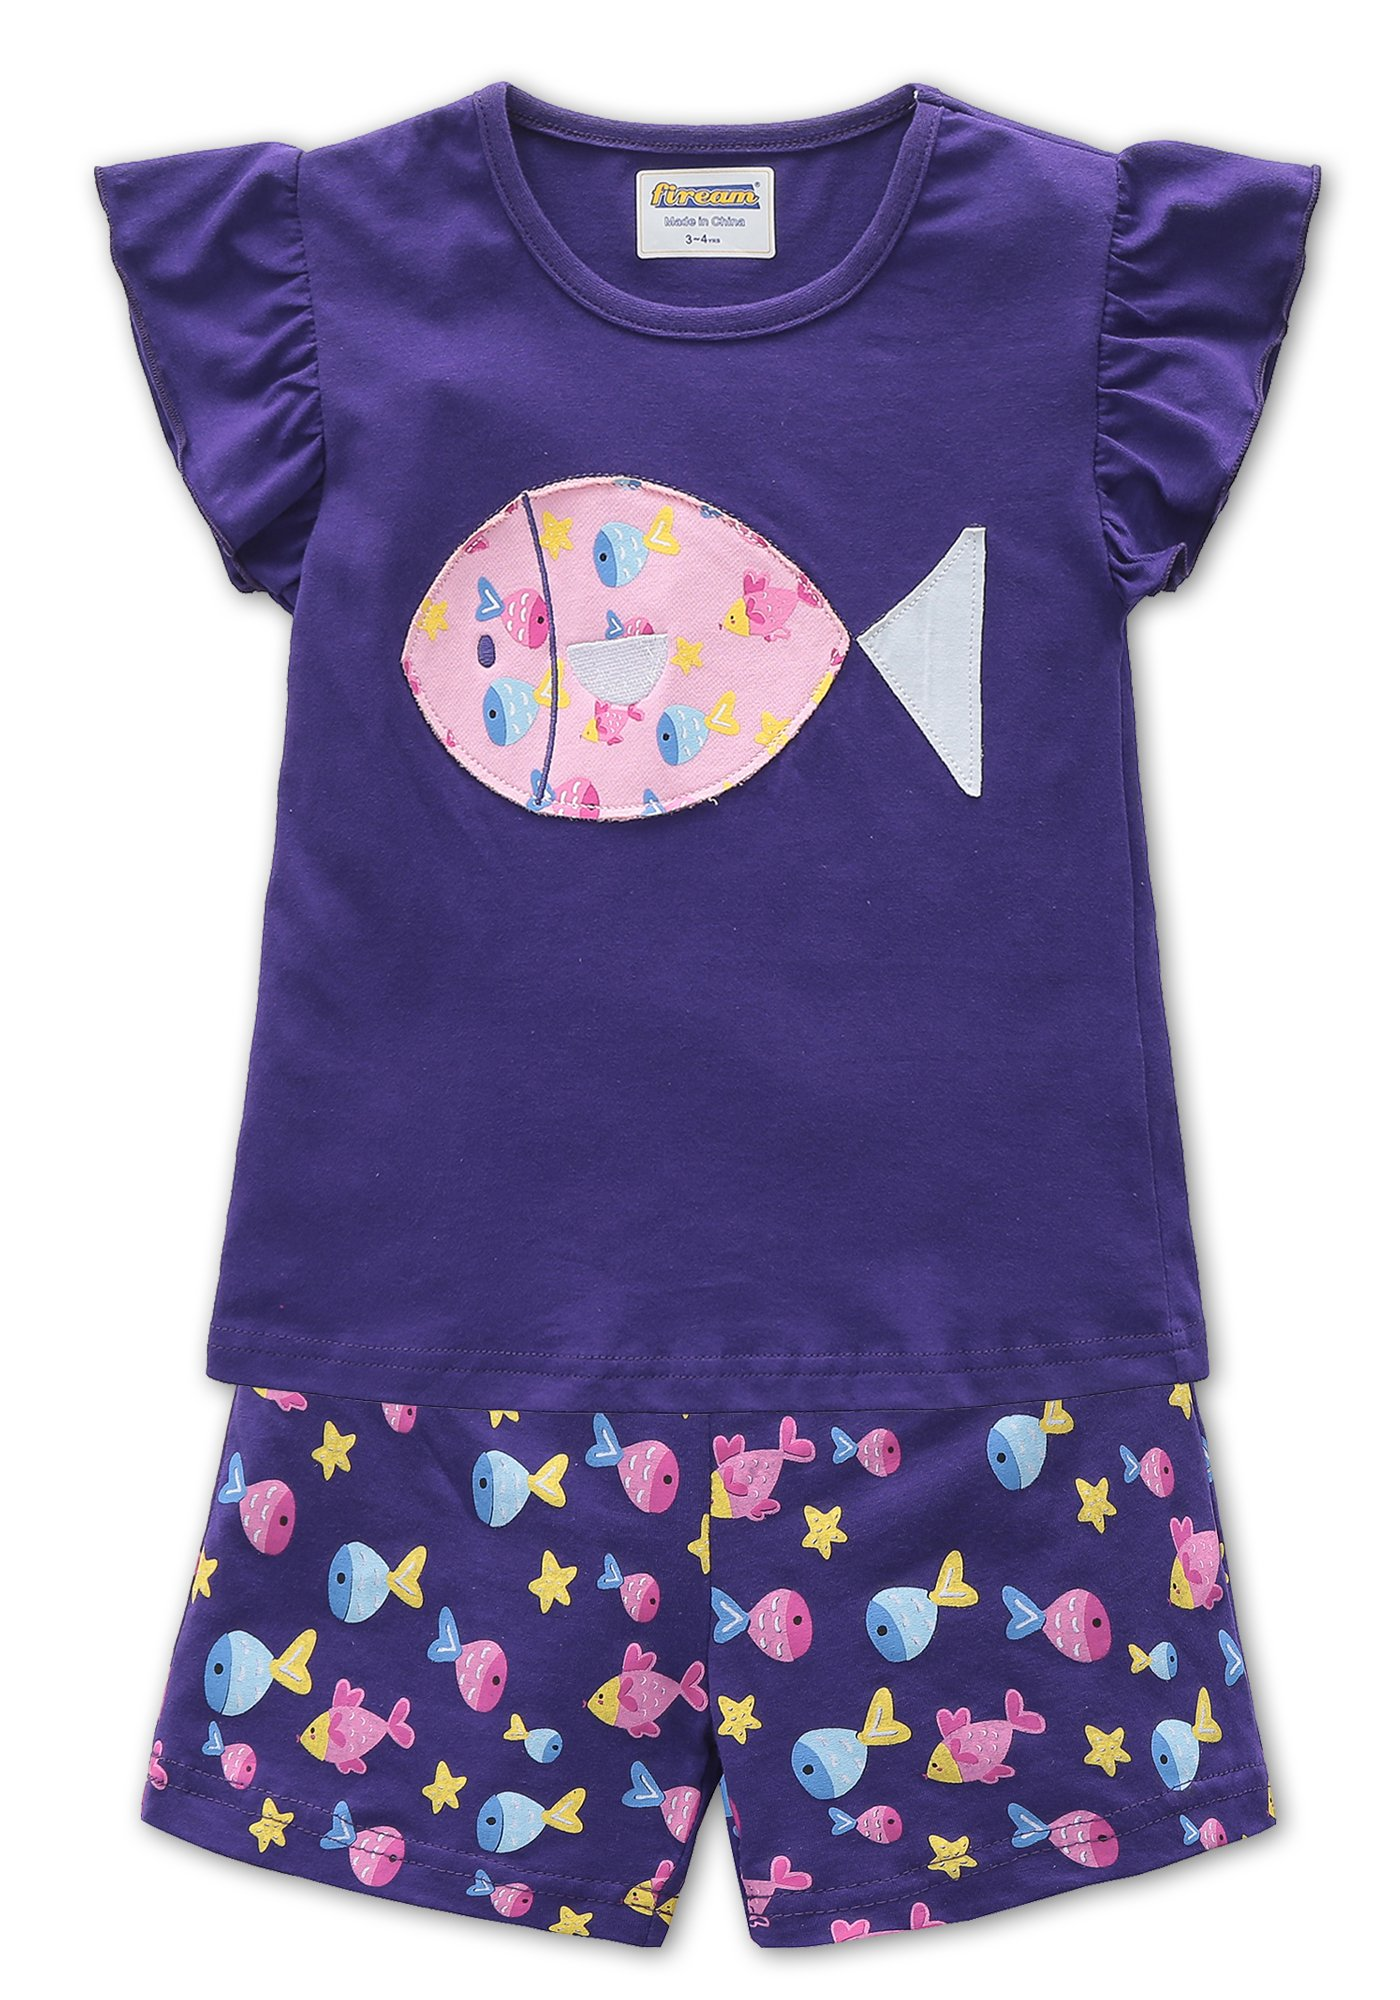 Fiream Girls Cotton Clothing Sets Summer Shortsleeve t-Shirts and Shorts 2 Pieces Sets (18004,6T/6-7YRS)